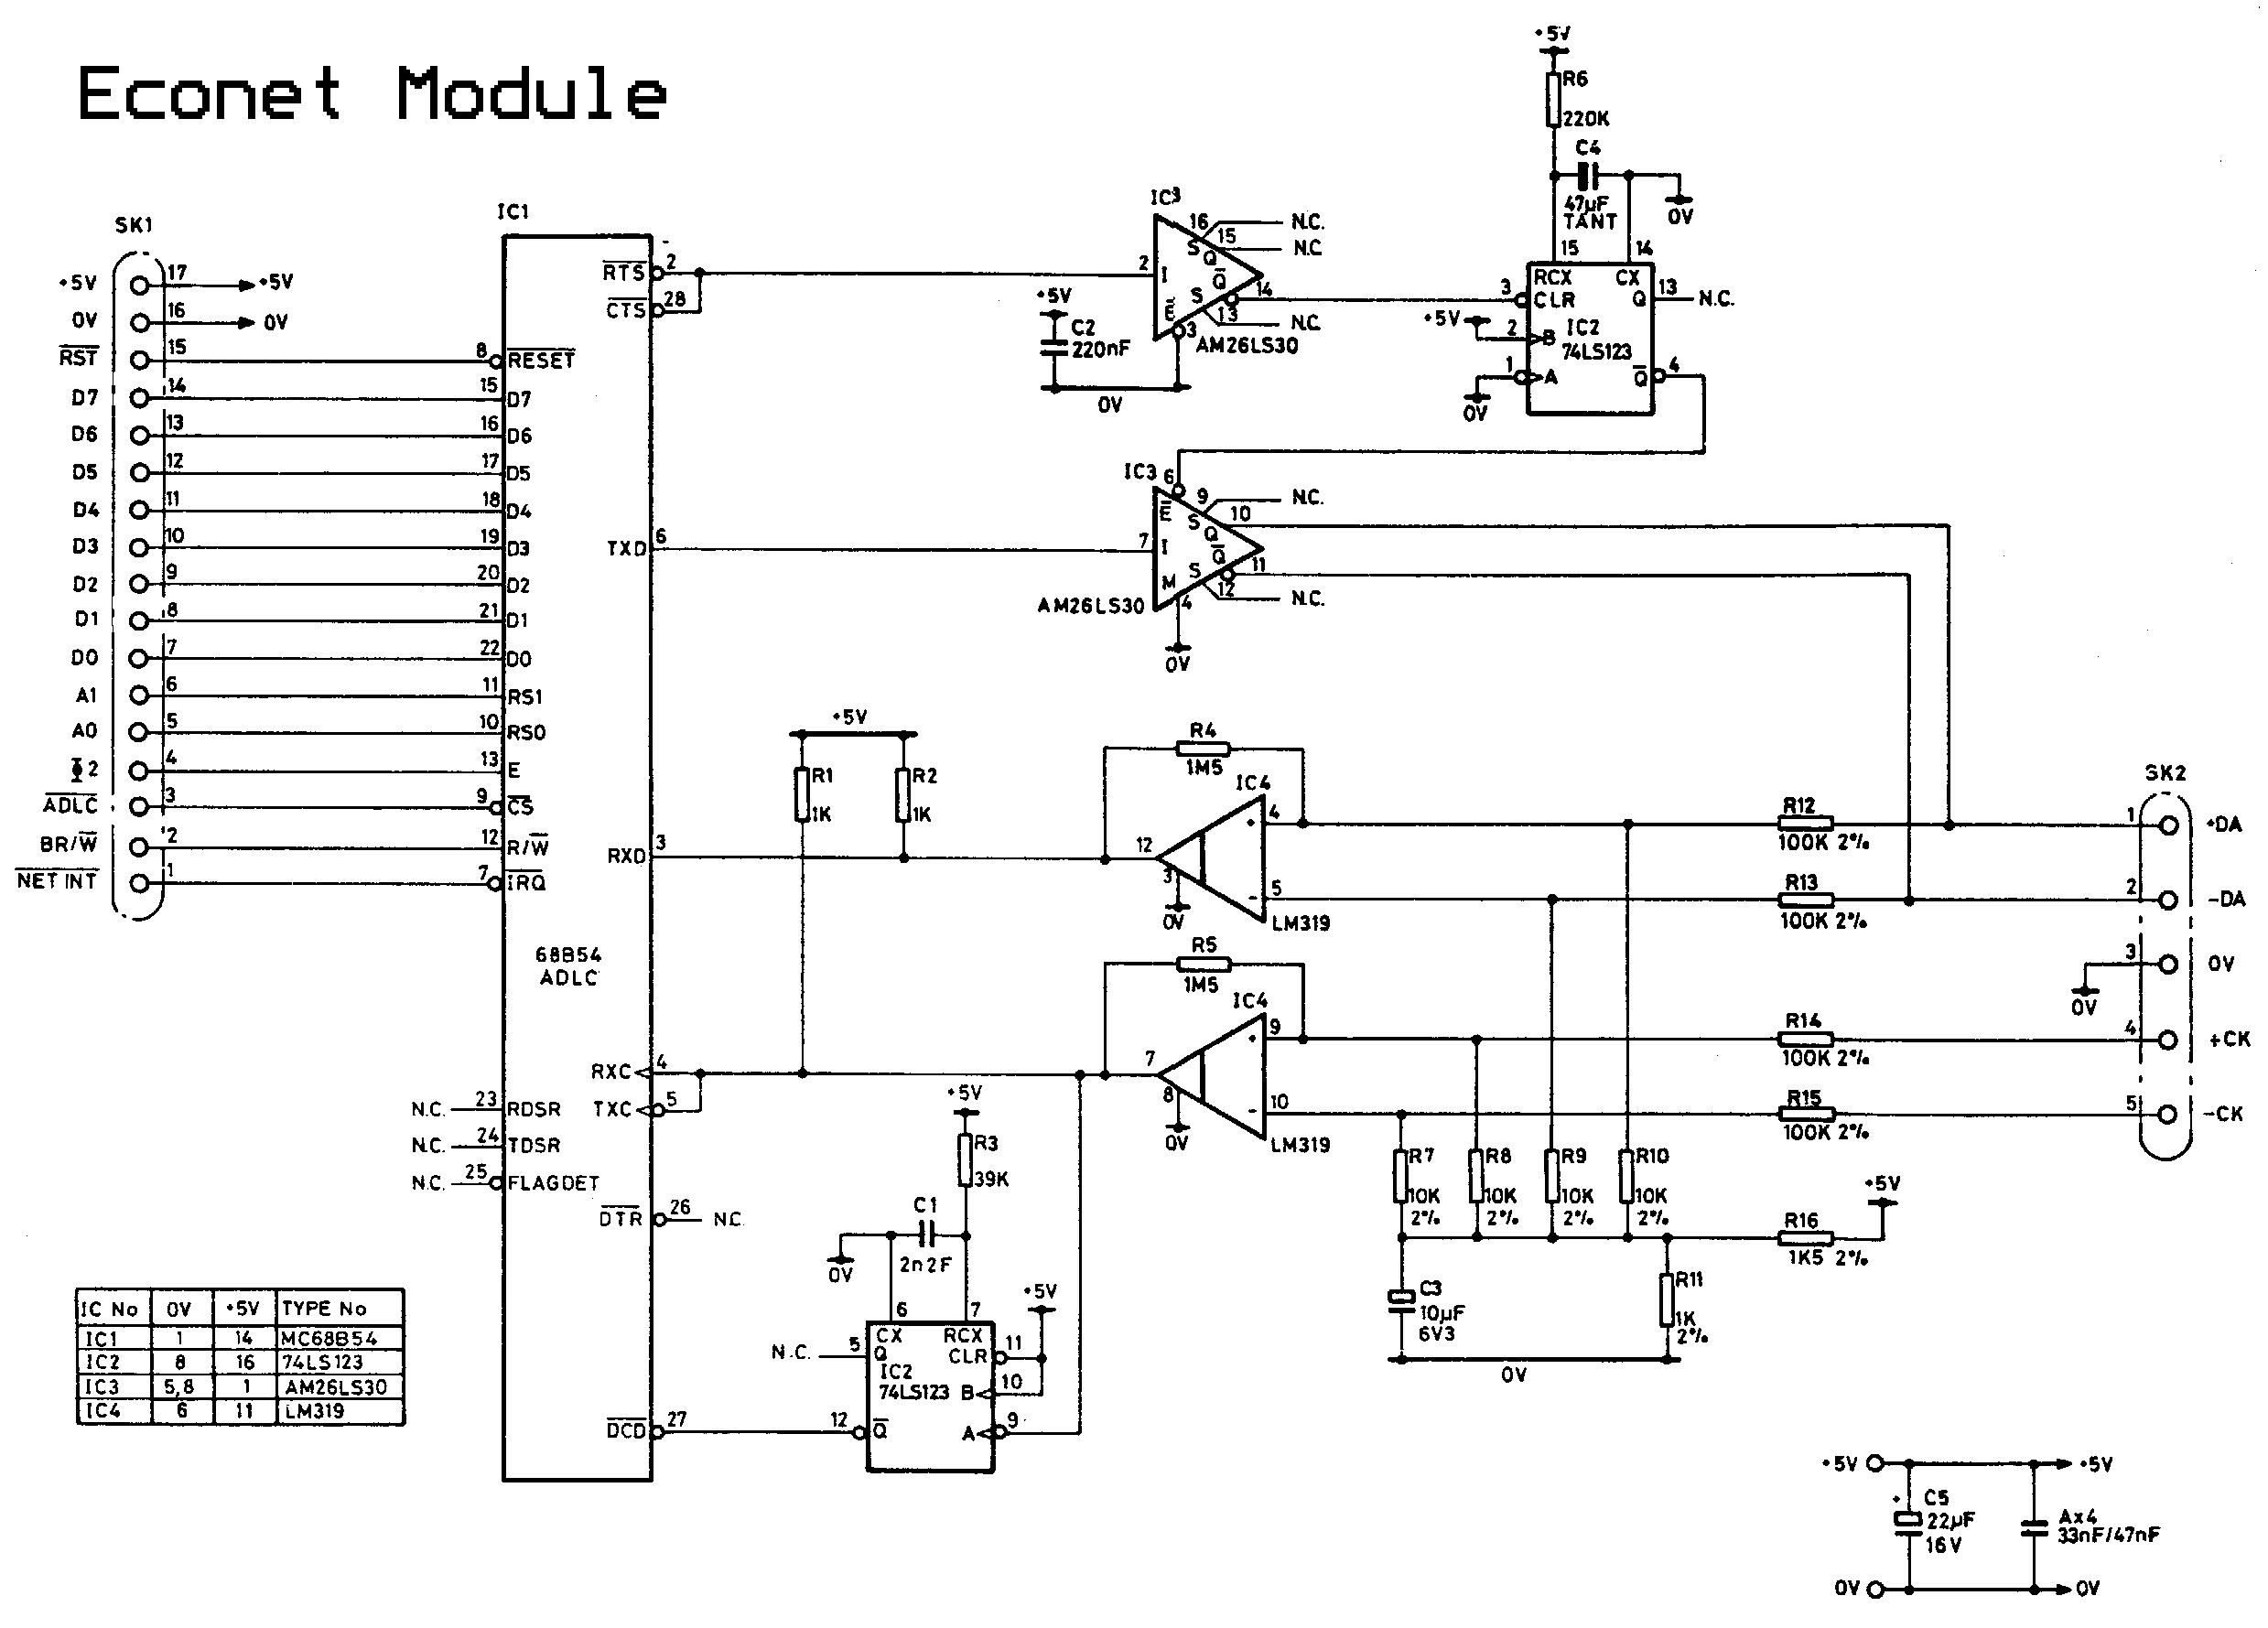 Wiring Diagram For Econet : 25 Wiring Diagram Images